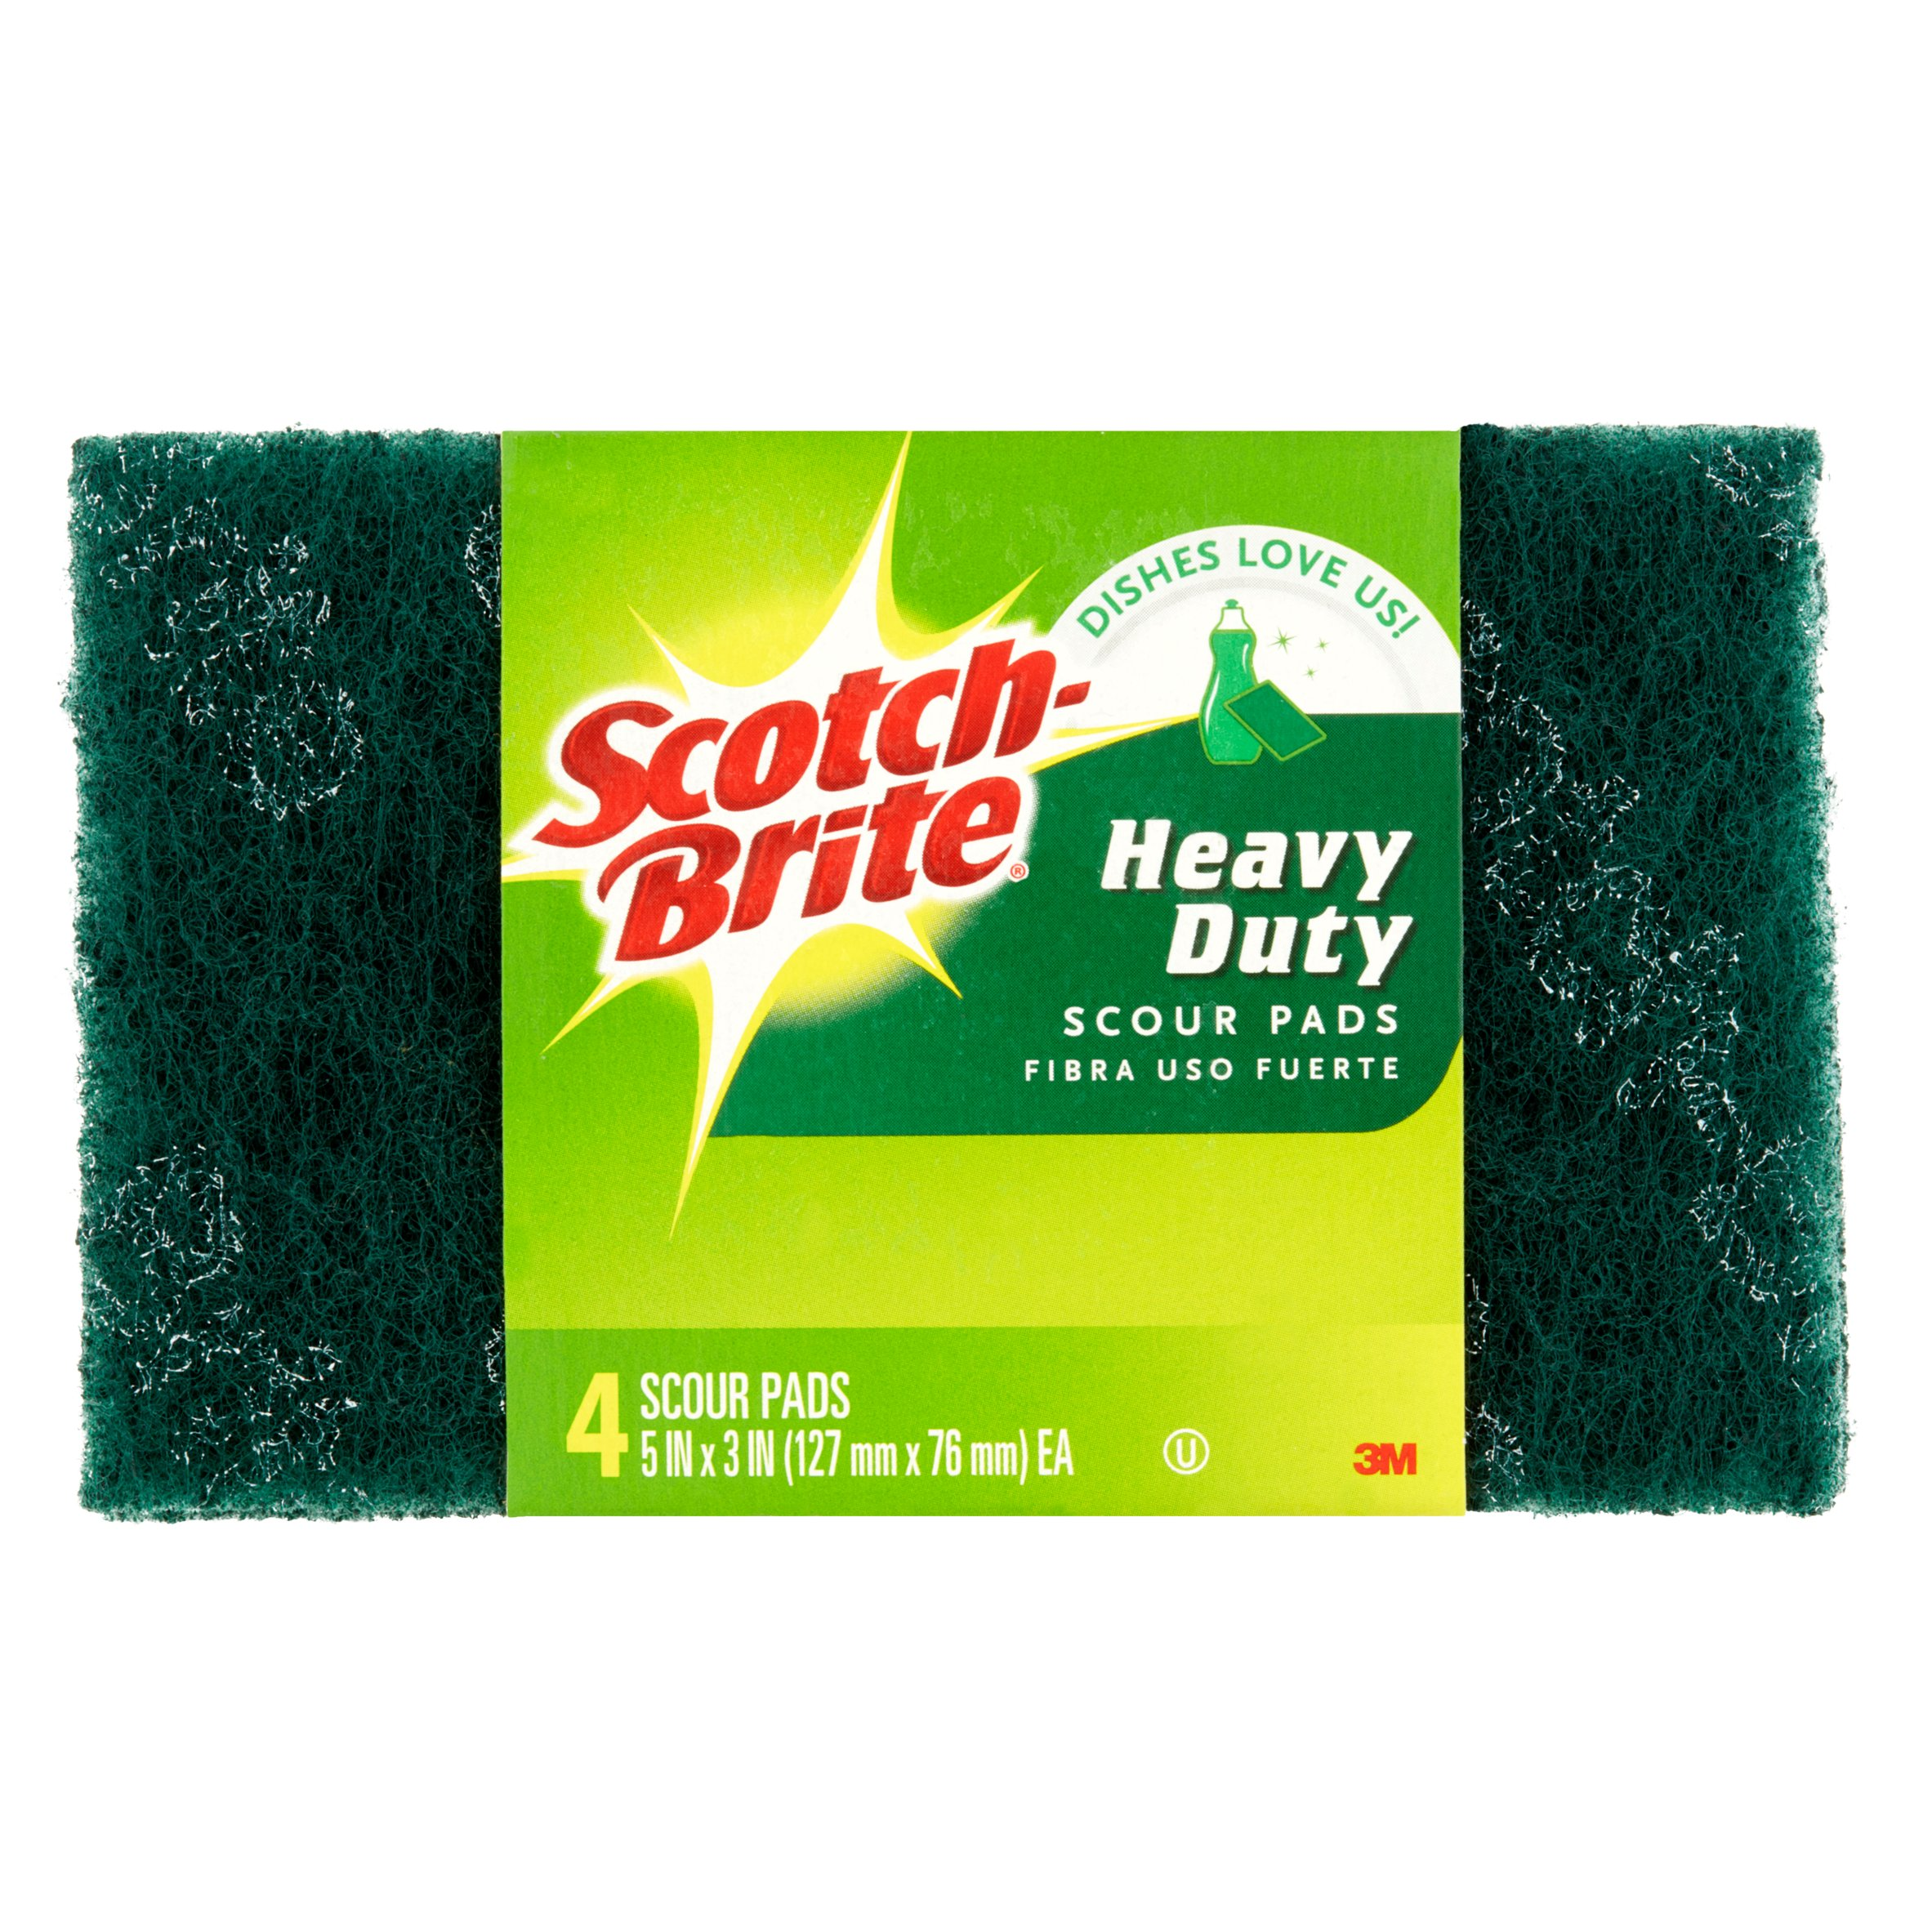 Scotch-Brite Heavy Duty Scour Pads, 4 count